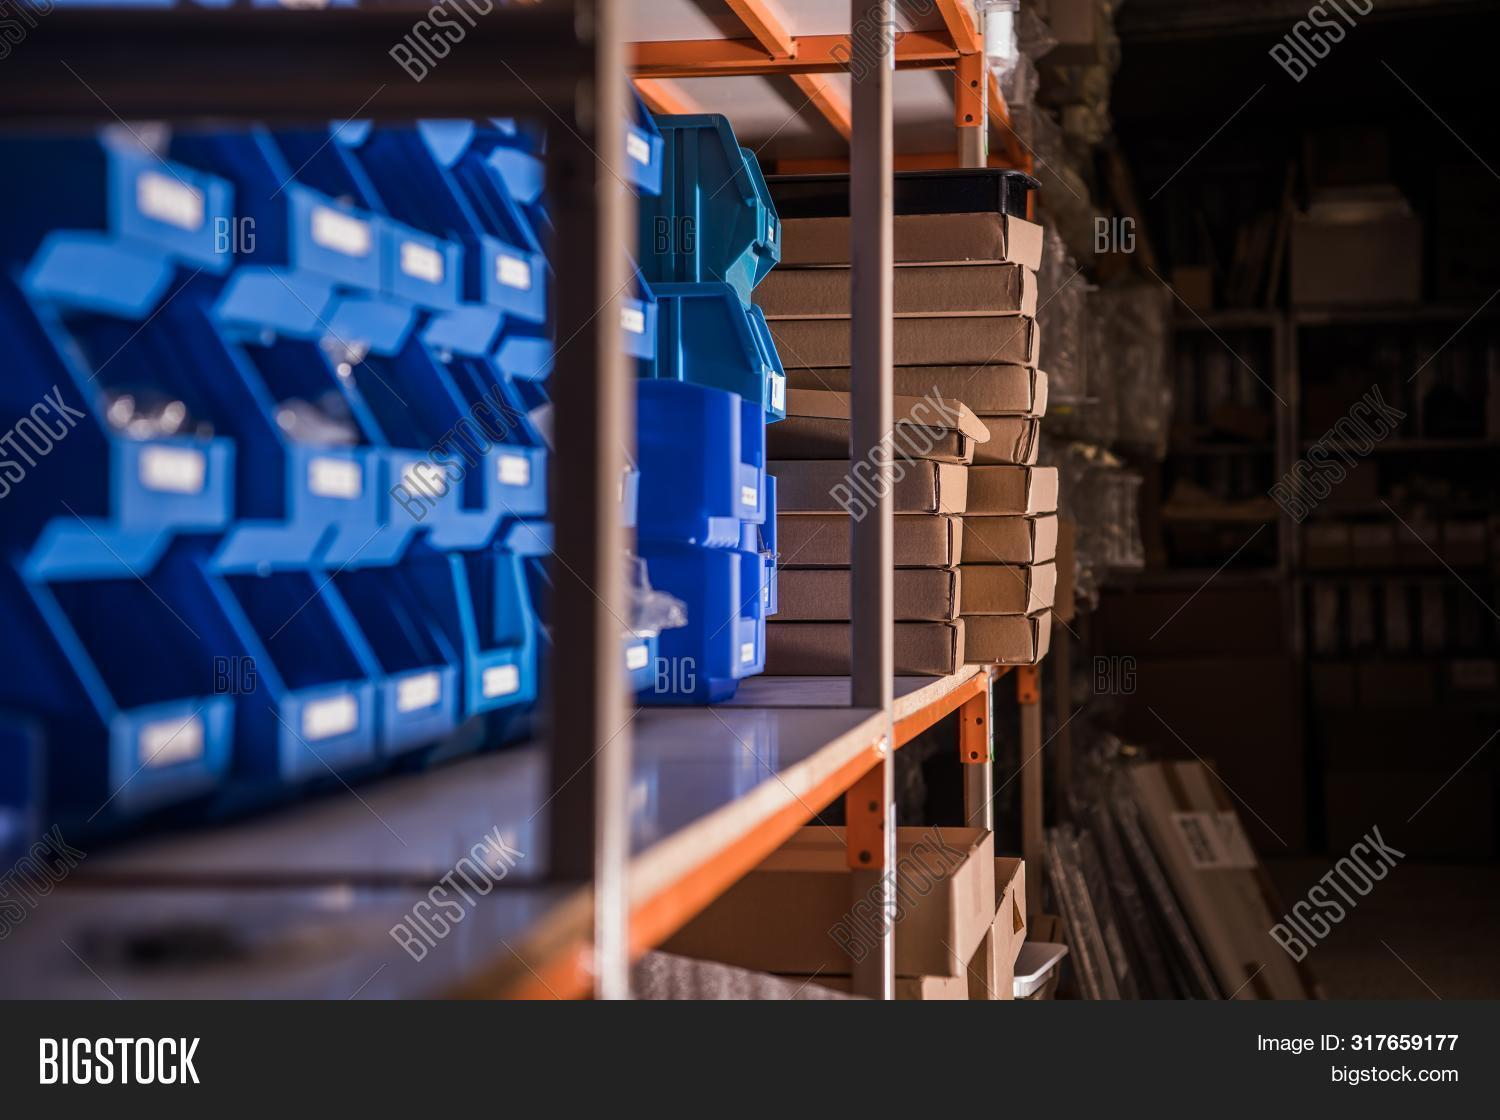 Retail Store Racking Systems For Retail Warehouses. Products Management And Storing. Industry Concep